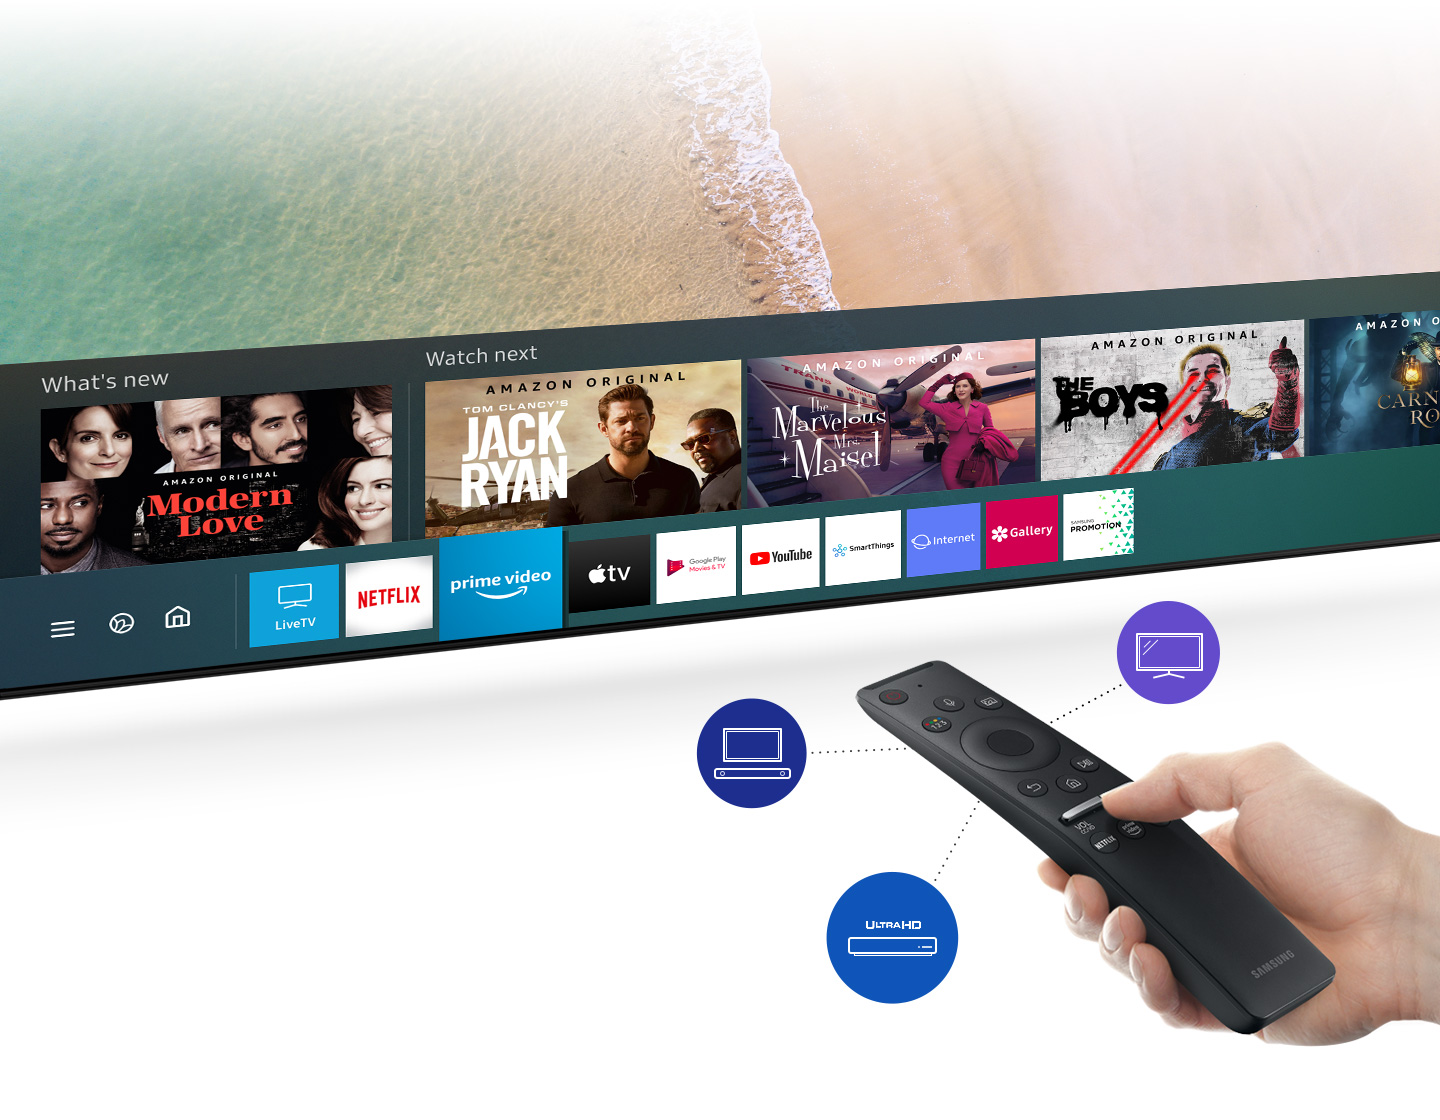 Access a variety of content with one remote